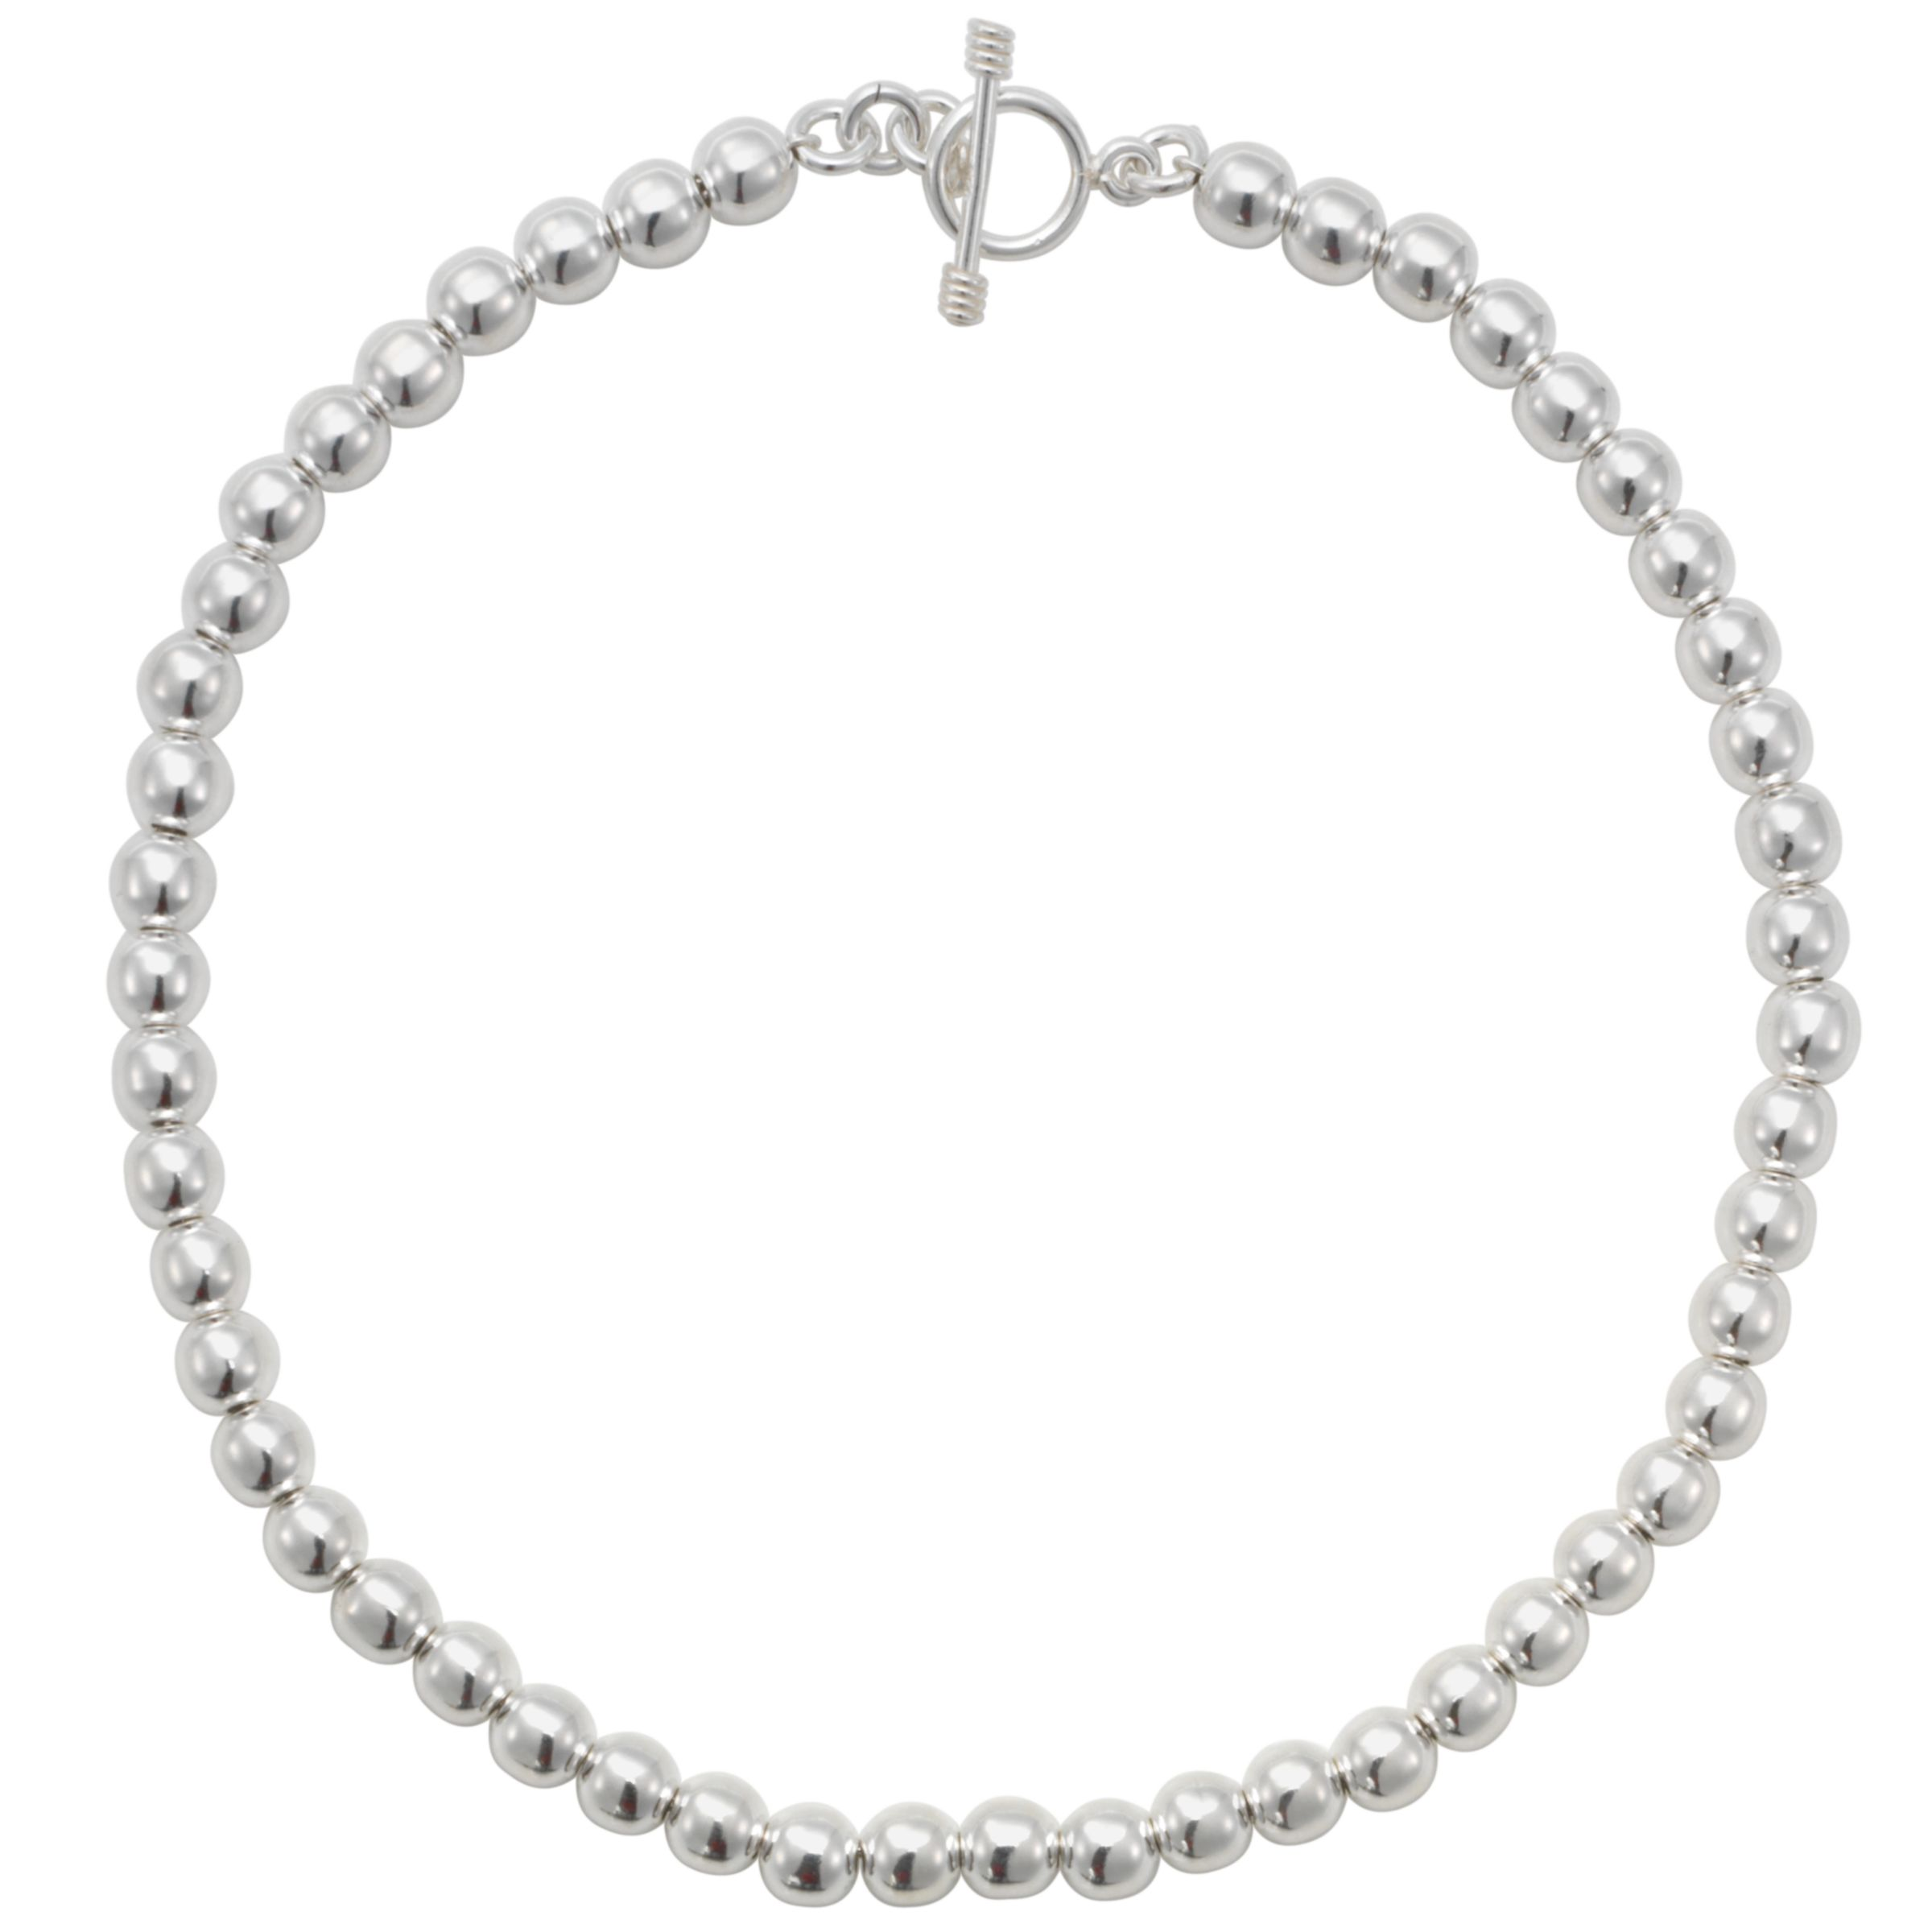 Andea Silver Round Bead Necklace